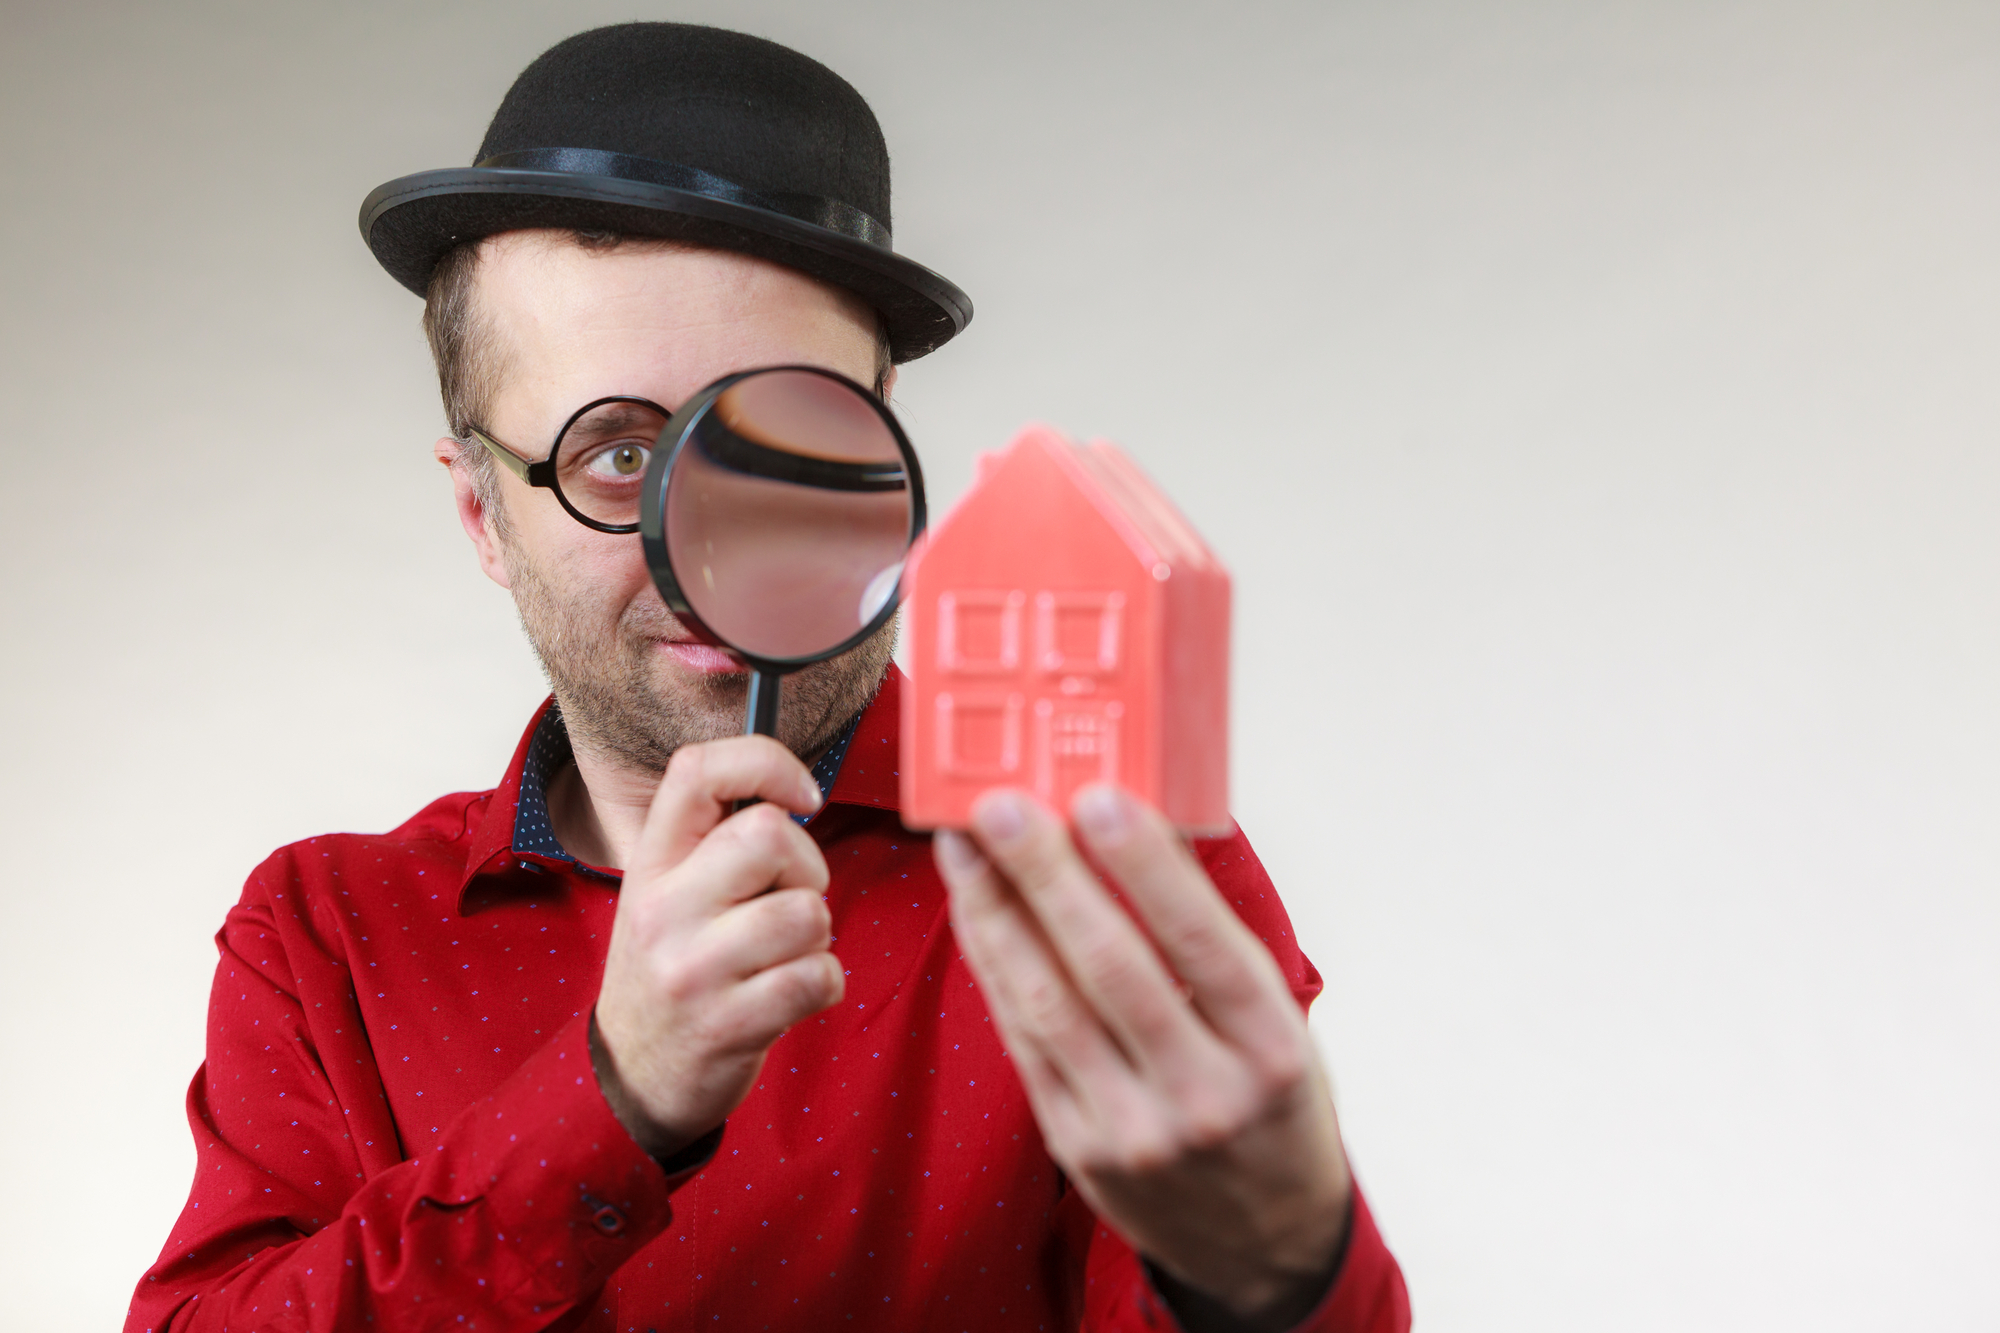 Man magnifying red house